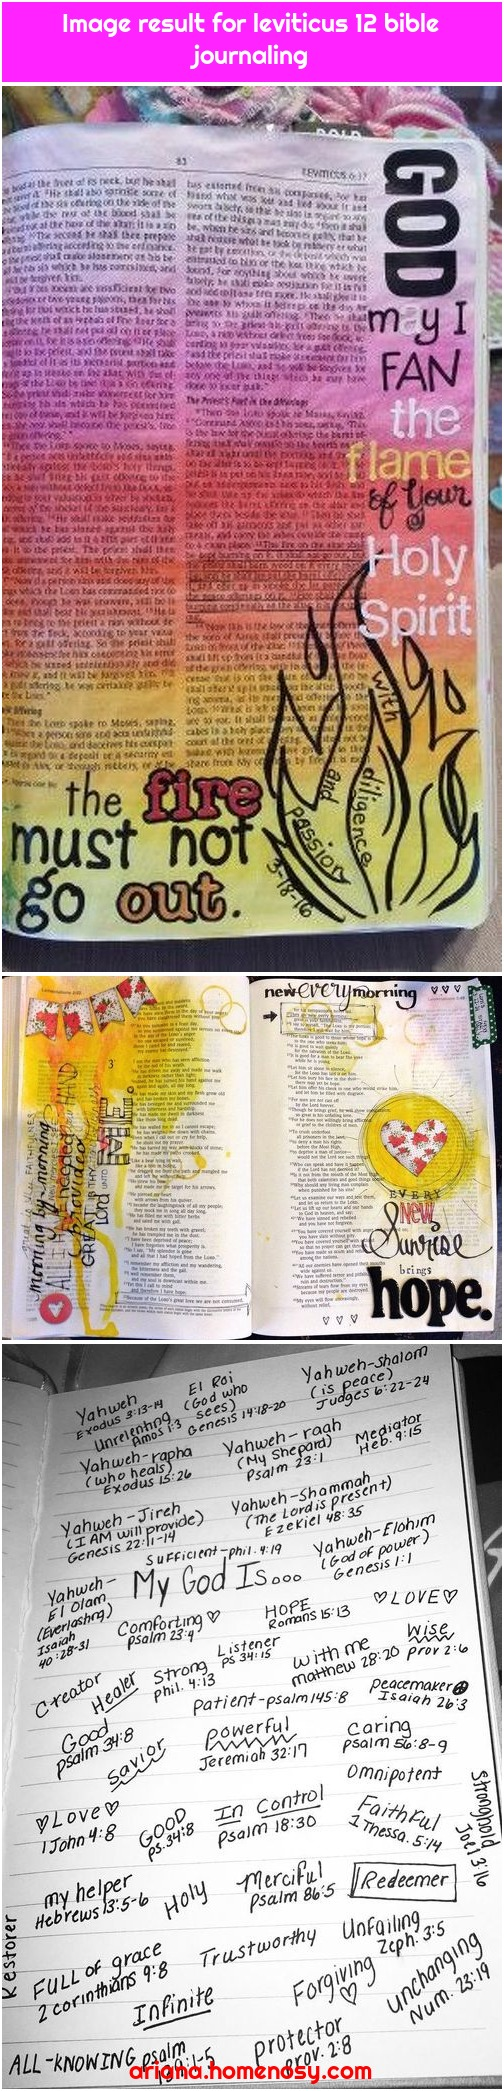 Image result for leviticus 12 bible journaling